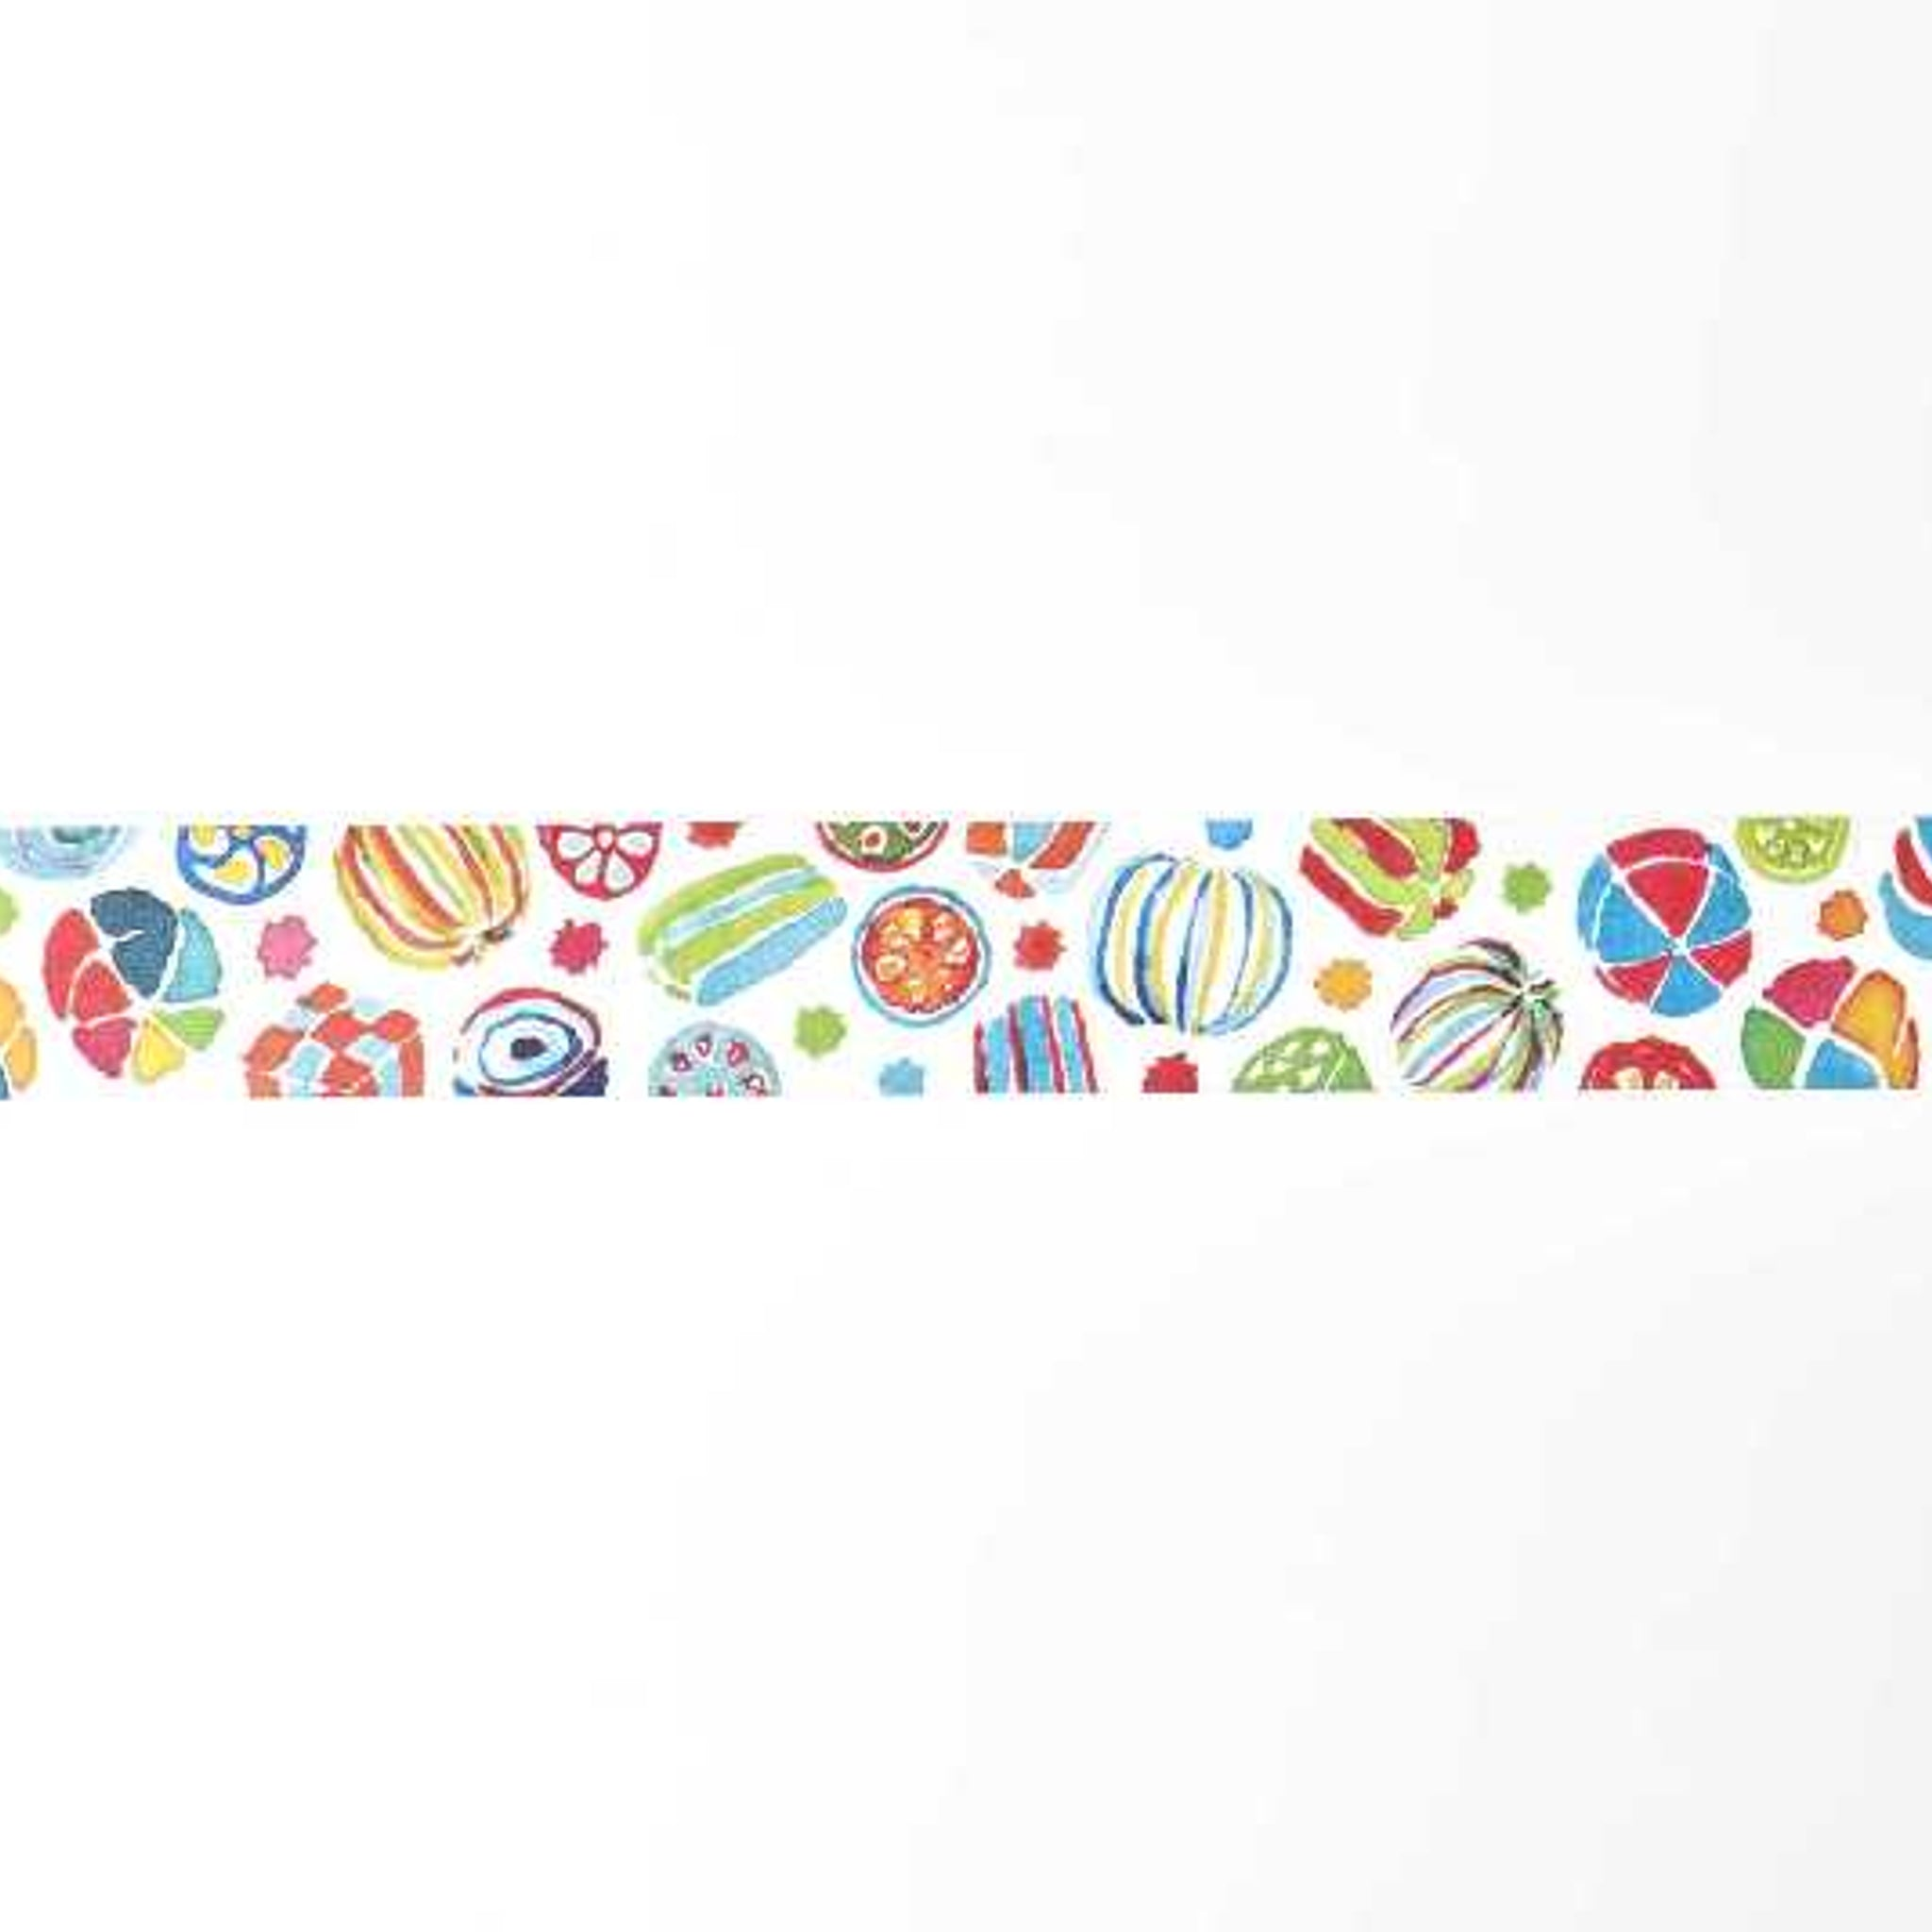 Round Top x Space Craft Washi Tape Candy